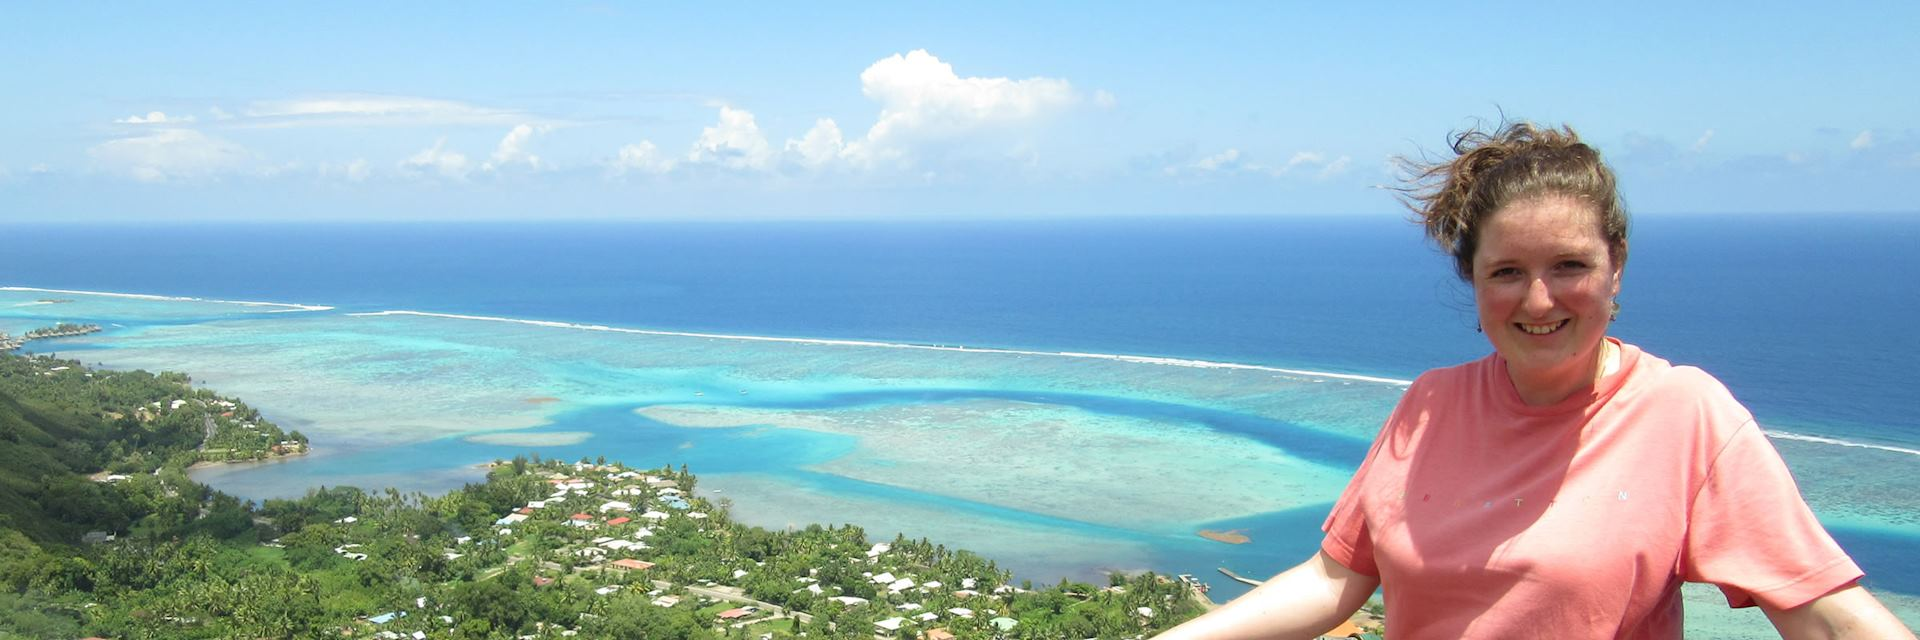 Annabel on top of Magic Mountain looking at the lagoons of Mo'orea, French Polynesia